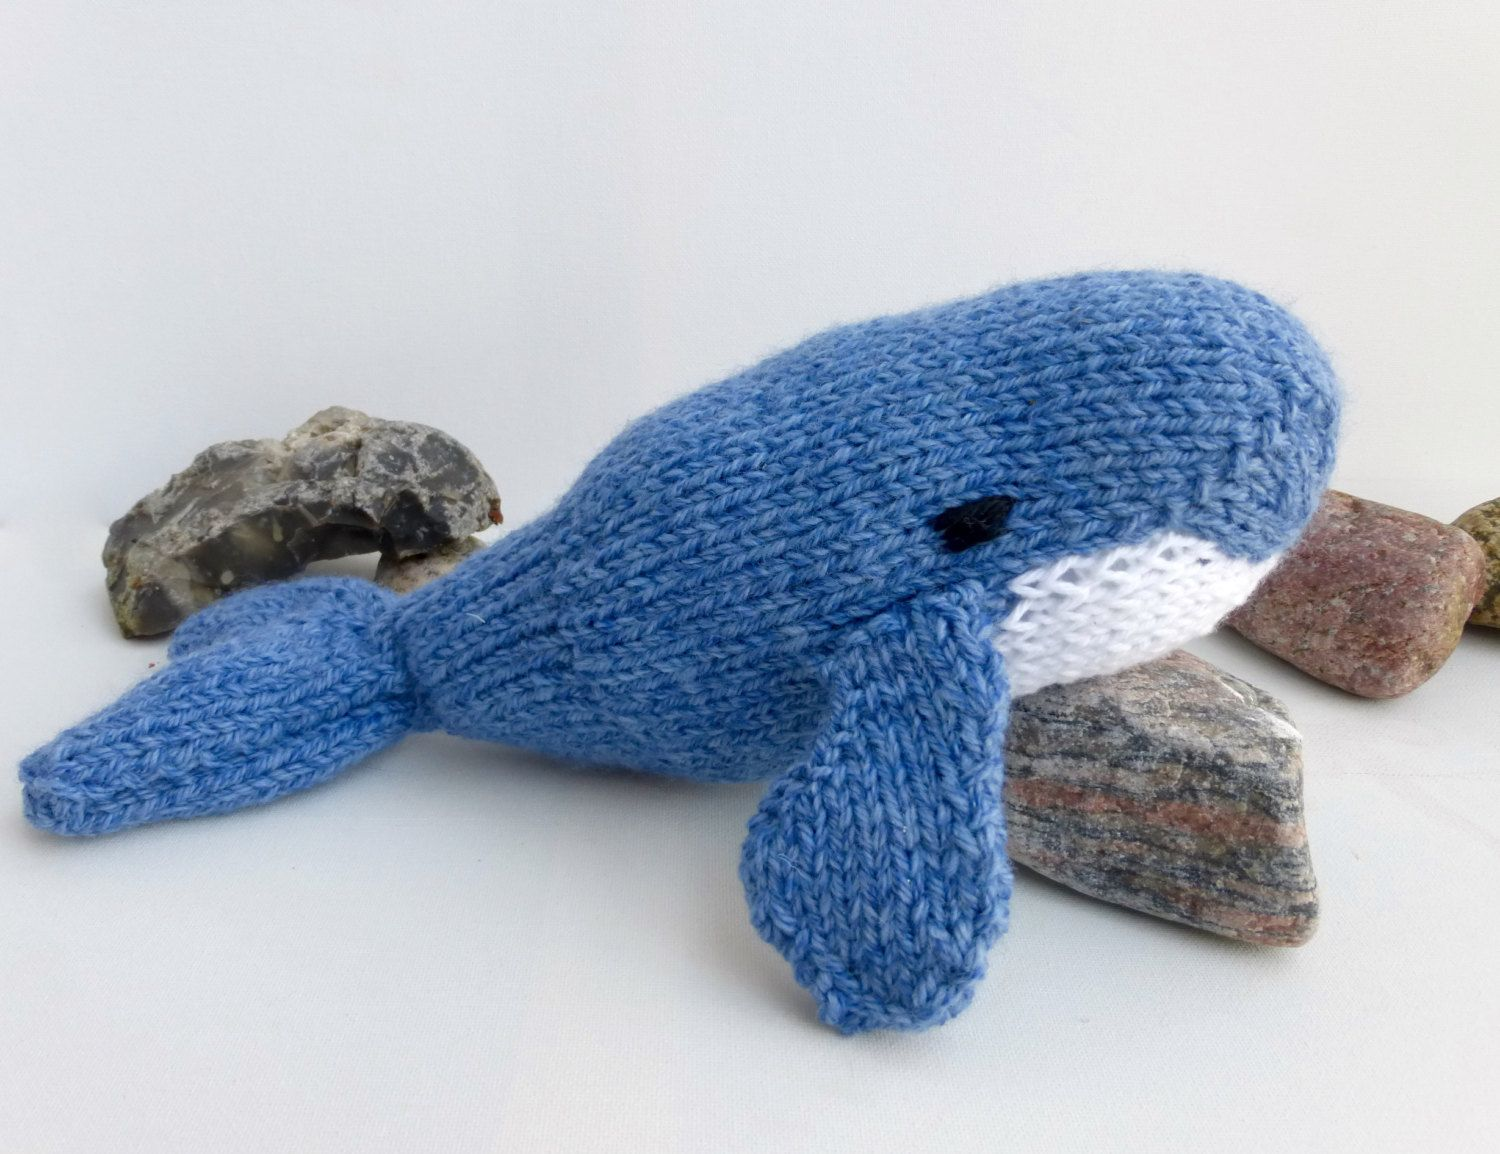 Toy Whale Knitting Pattern, PDF instant download to knit your own ...